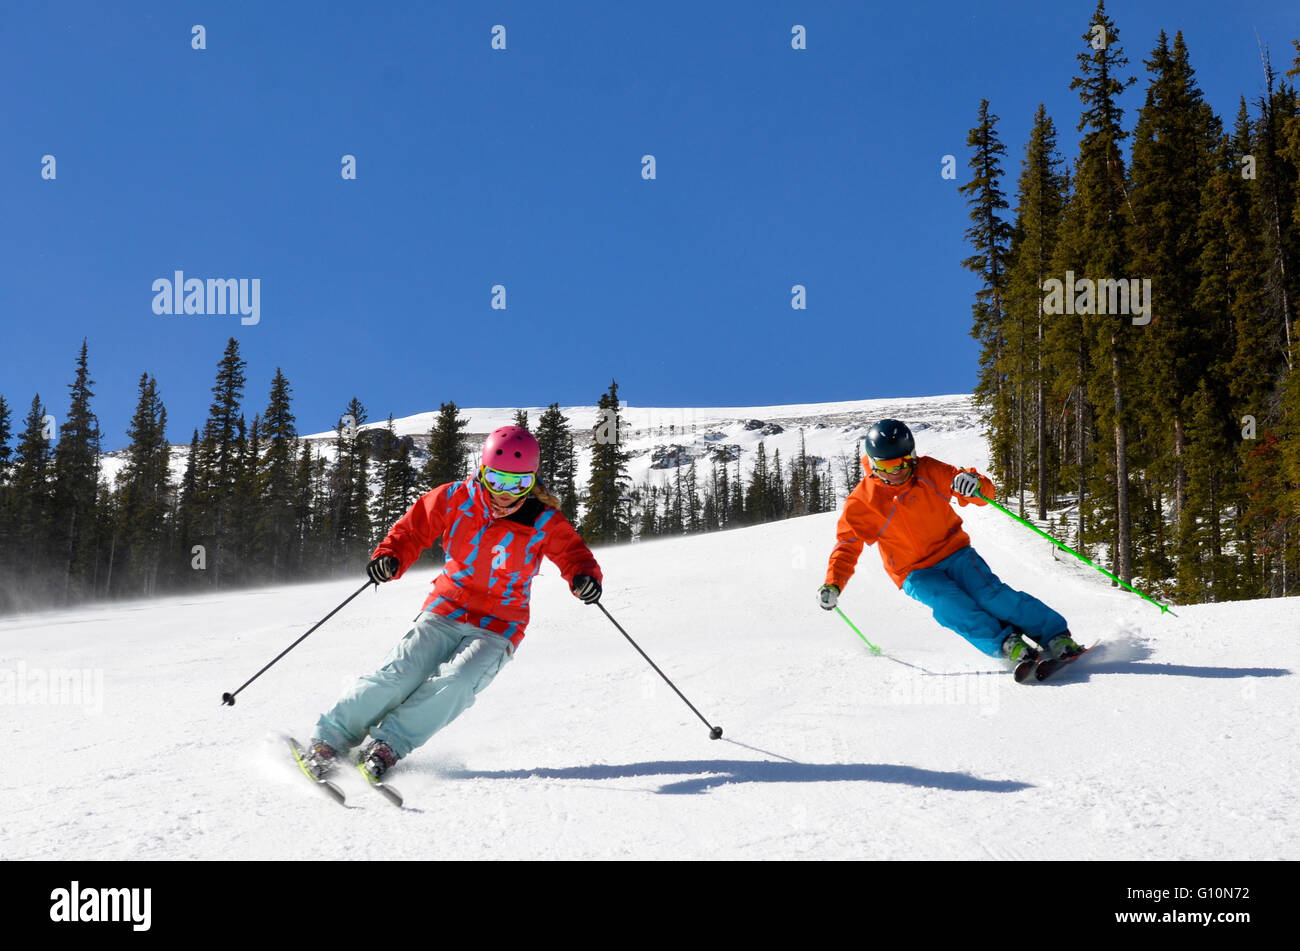 Skiing Canadian Rockies, Alberta - Stock Image